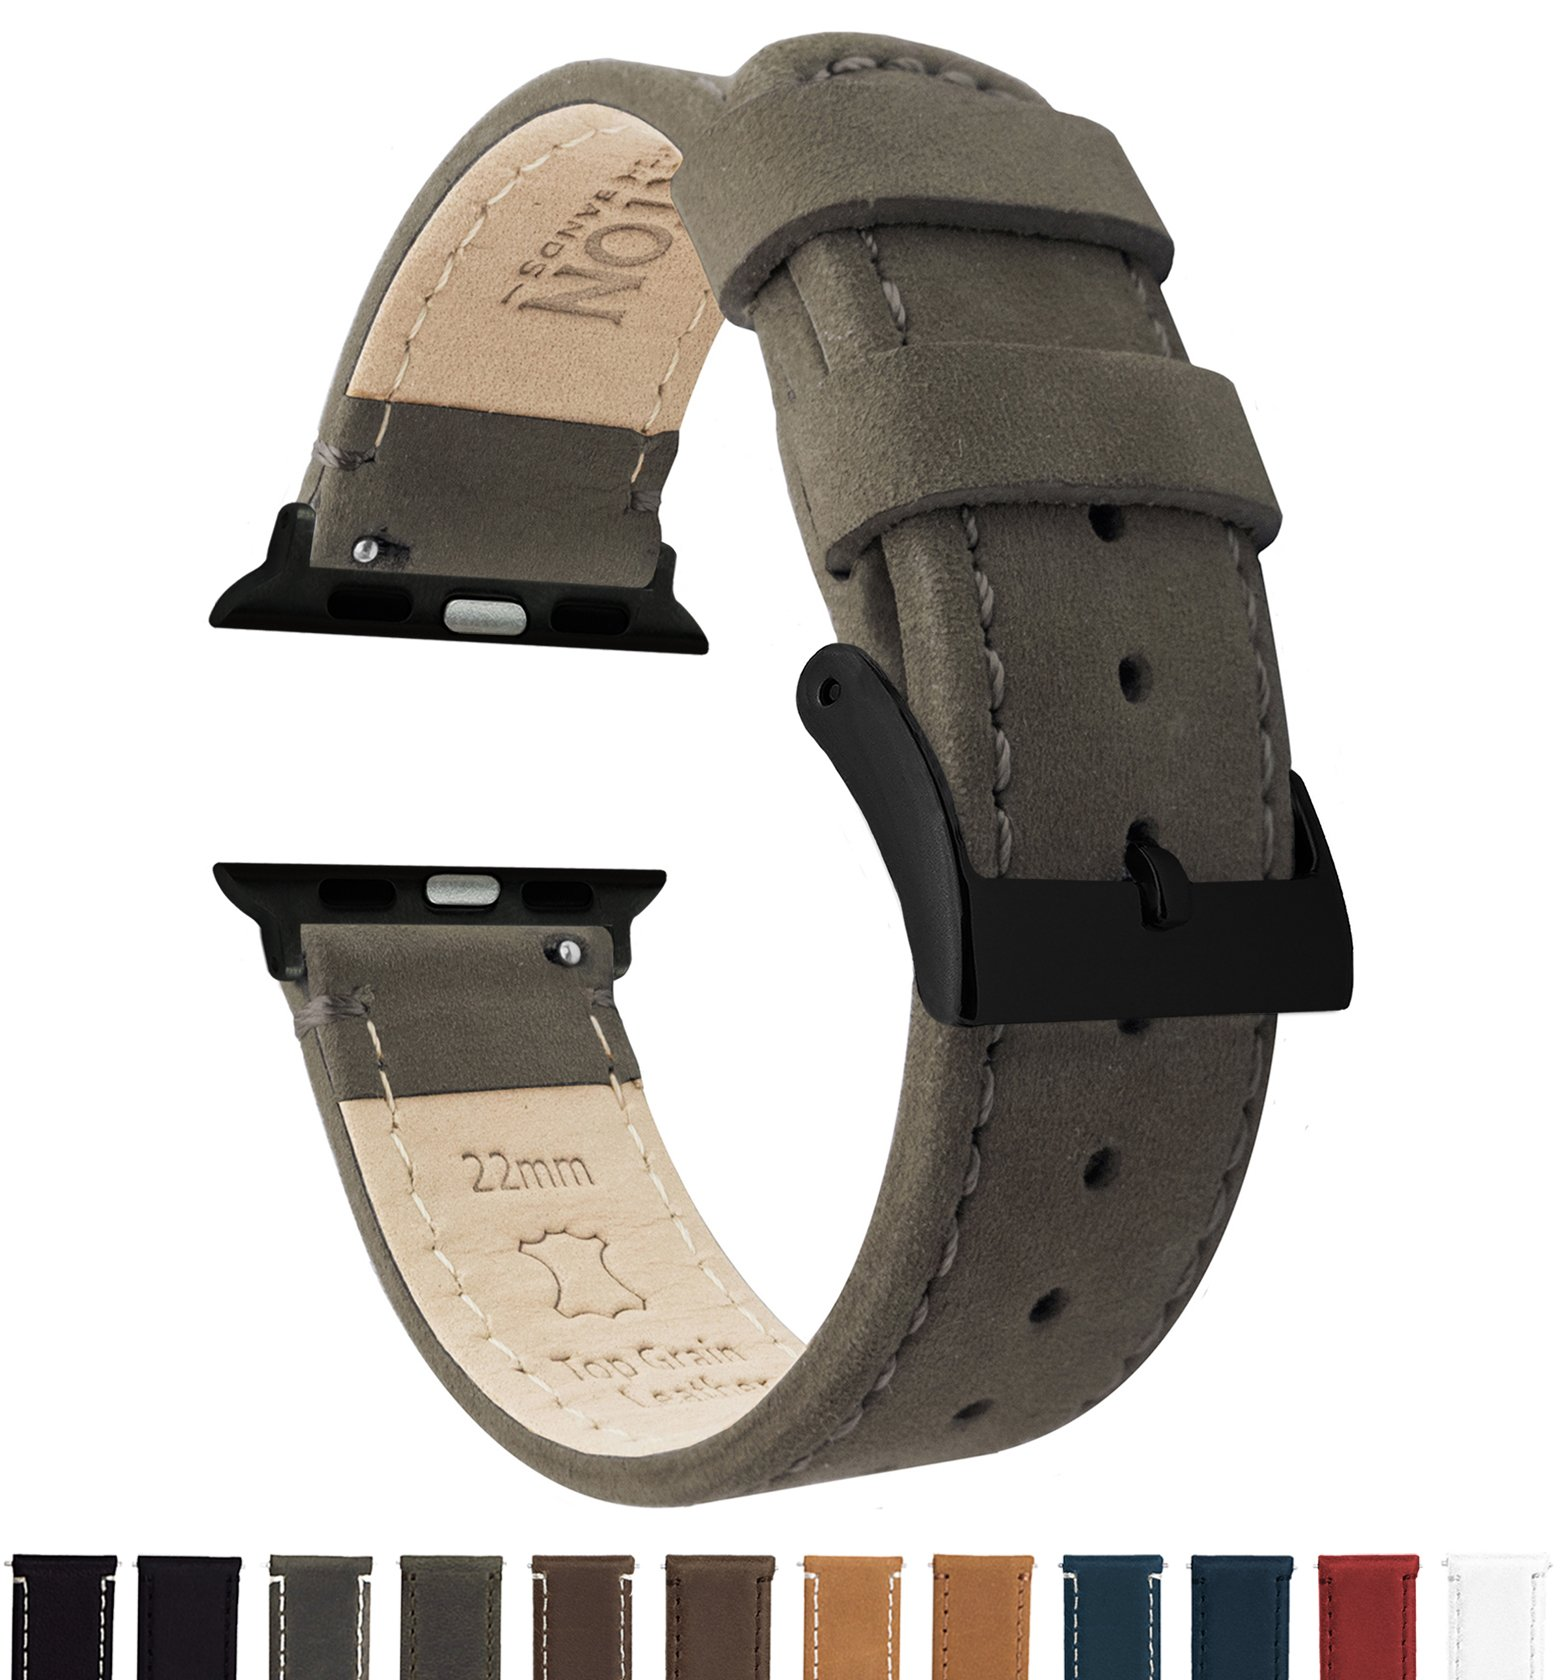 BARTON Leather Watch Bands for Apple Watch - Black Hardware for 42mm & 38mm -Espresso Leather & Stitching